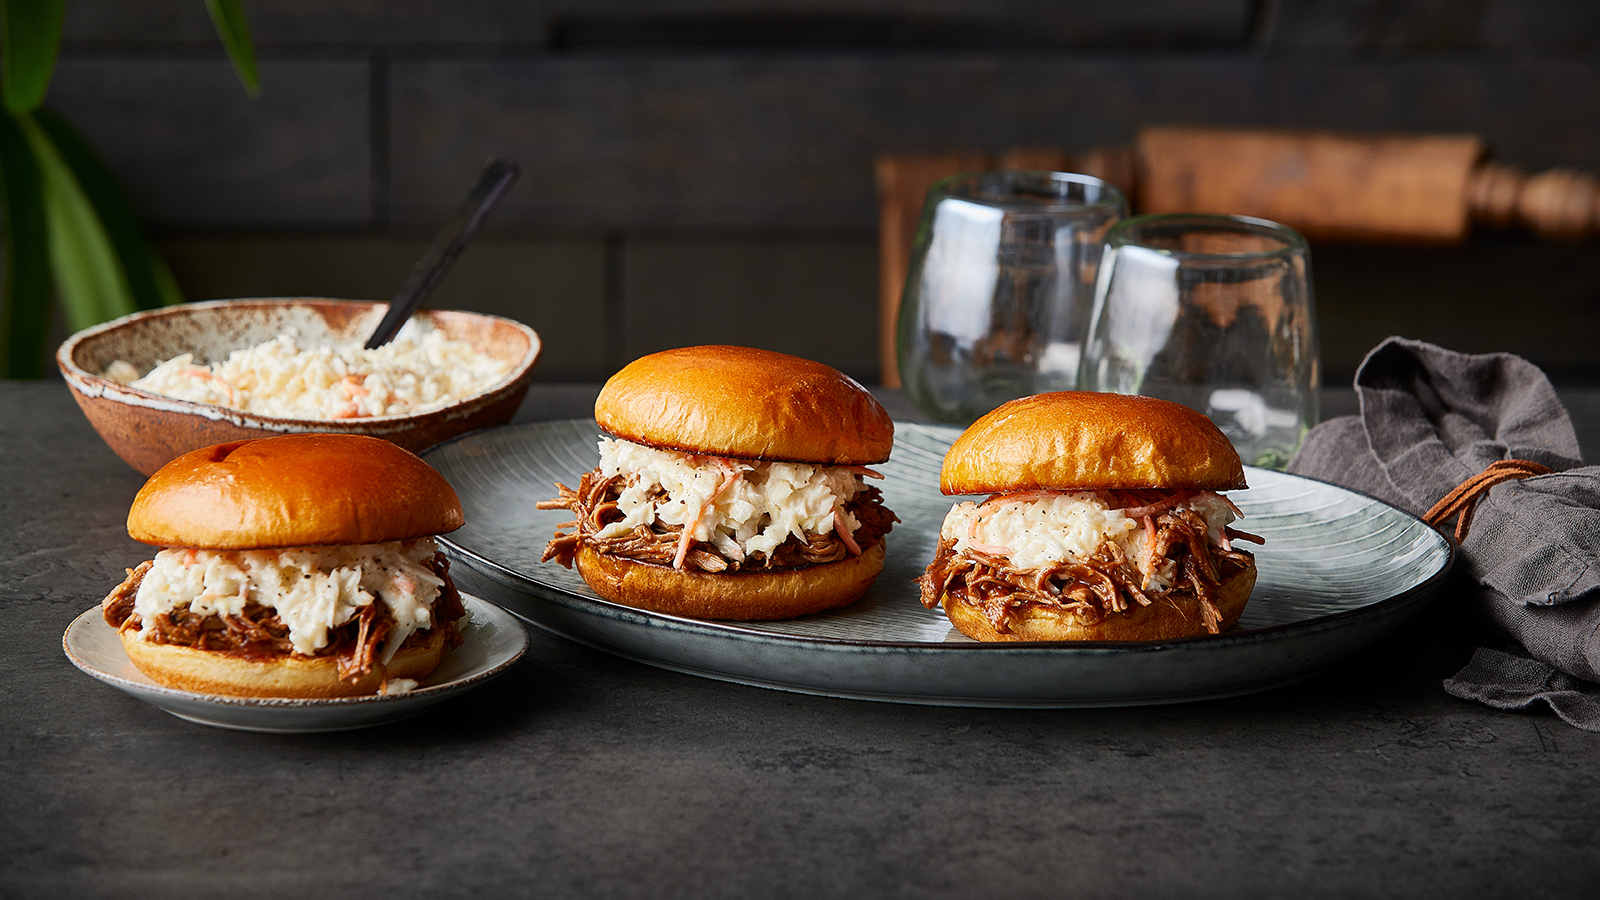 Slow Cooker Tangy Carolina Pulled Pork Sandwich